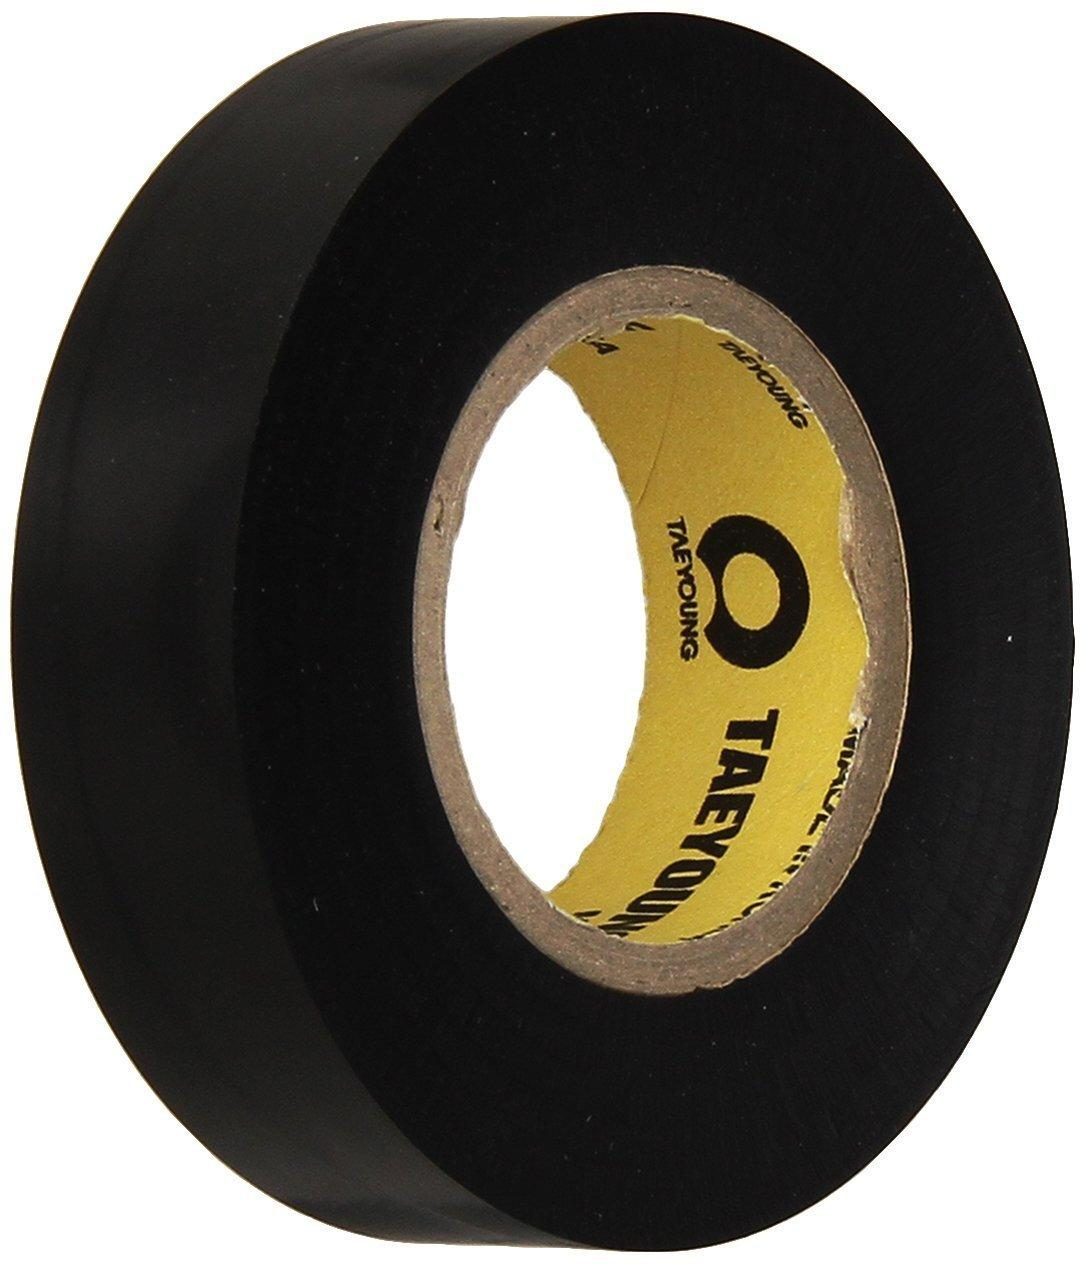 7ec9dd37 c493 4470 bbae e6c1aa1fe700._SR300300_ tapecase tc790 dry vinyl tape (multiple sizes) amazon com black non-adhesive vinyl wiring harness tape at bayanpartner.co